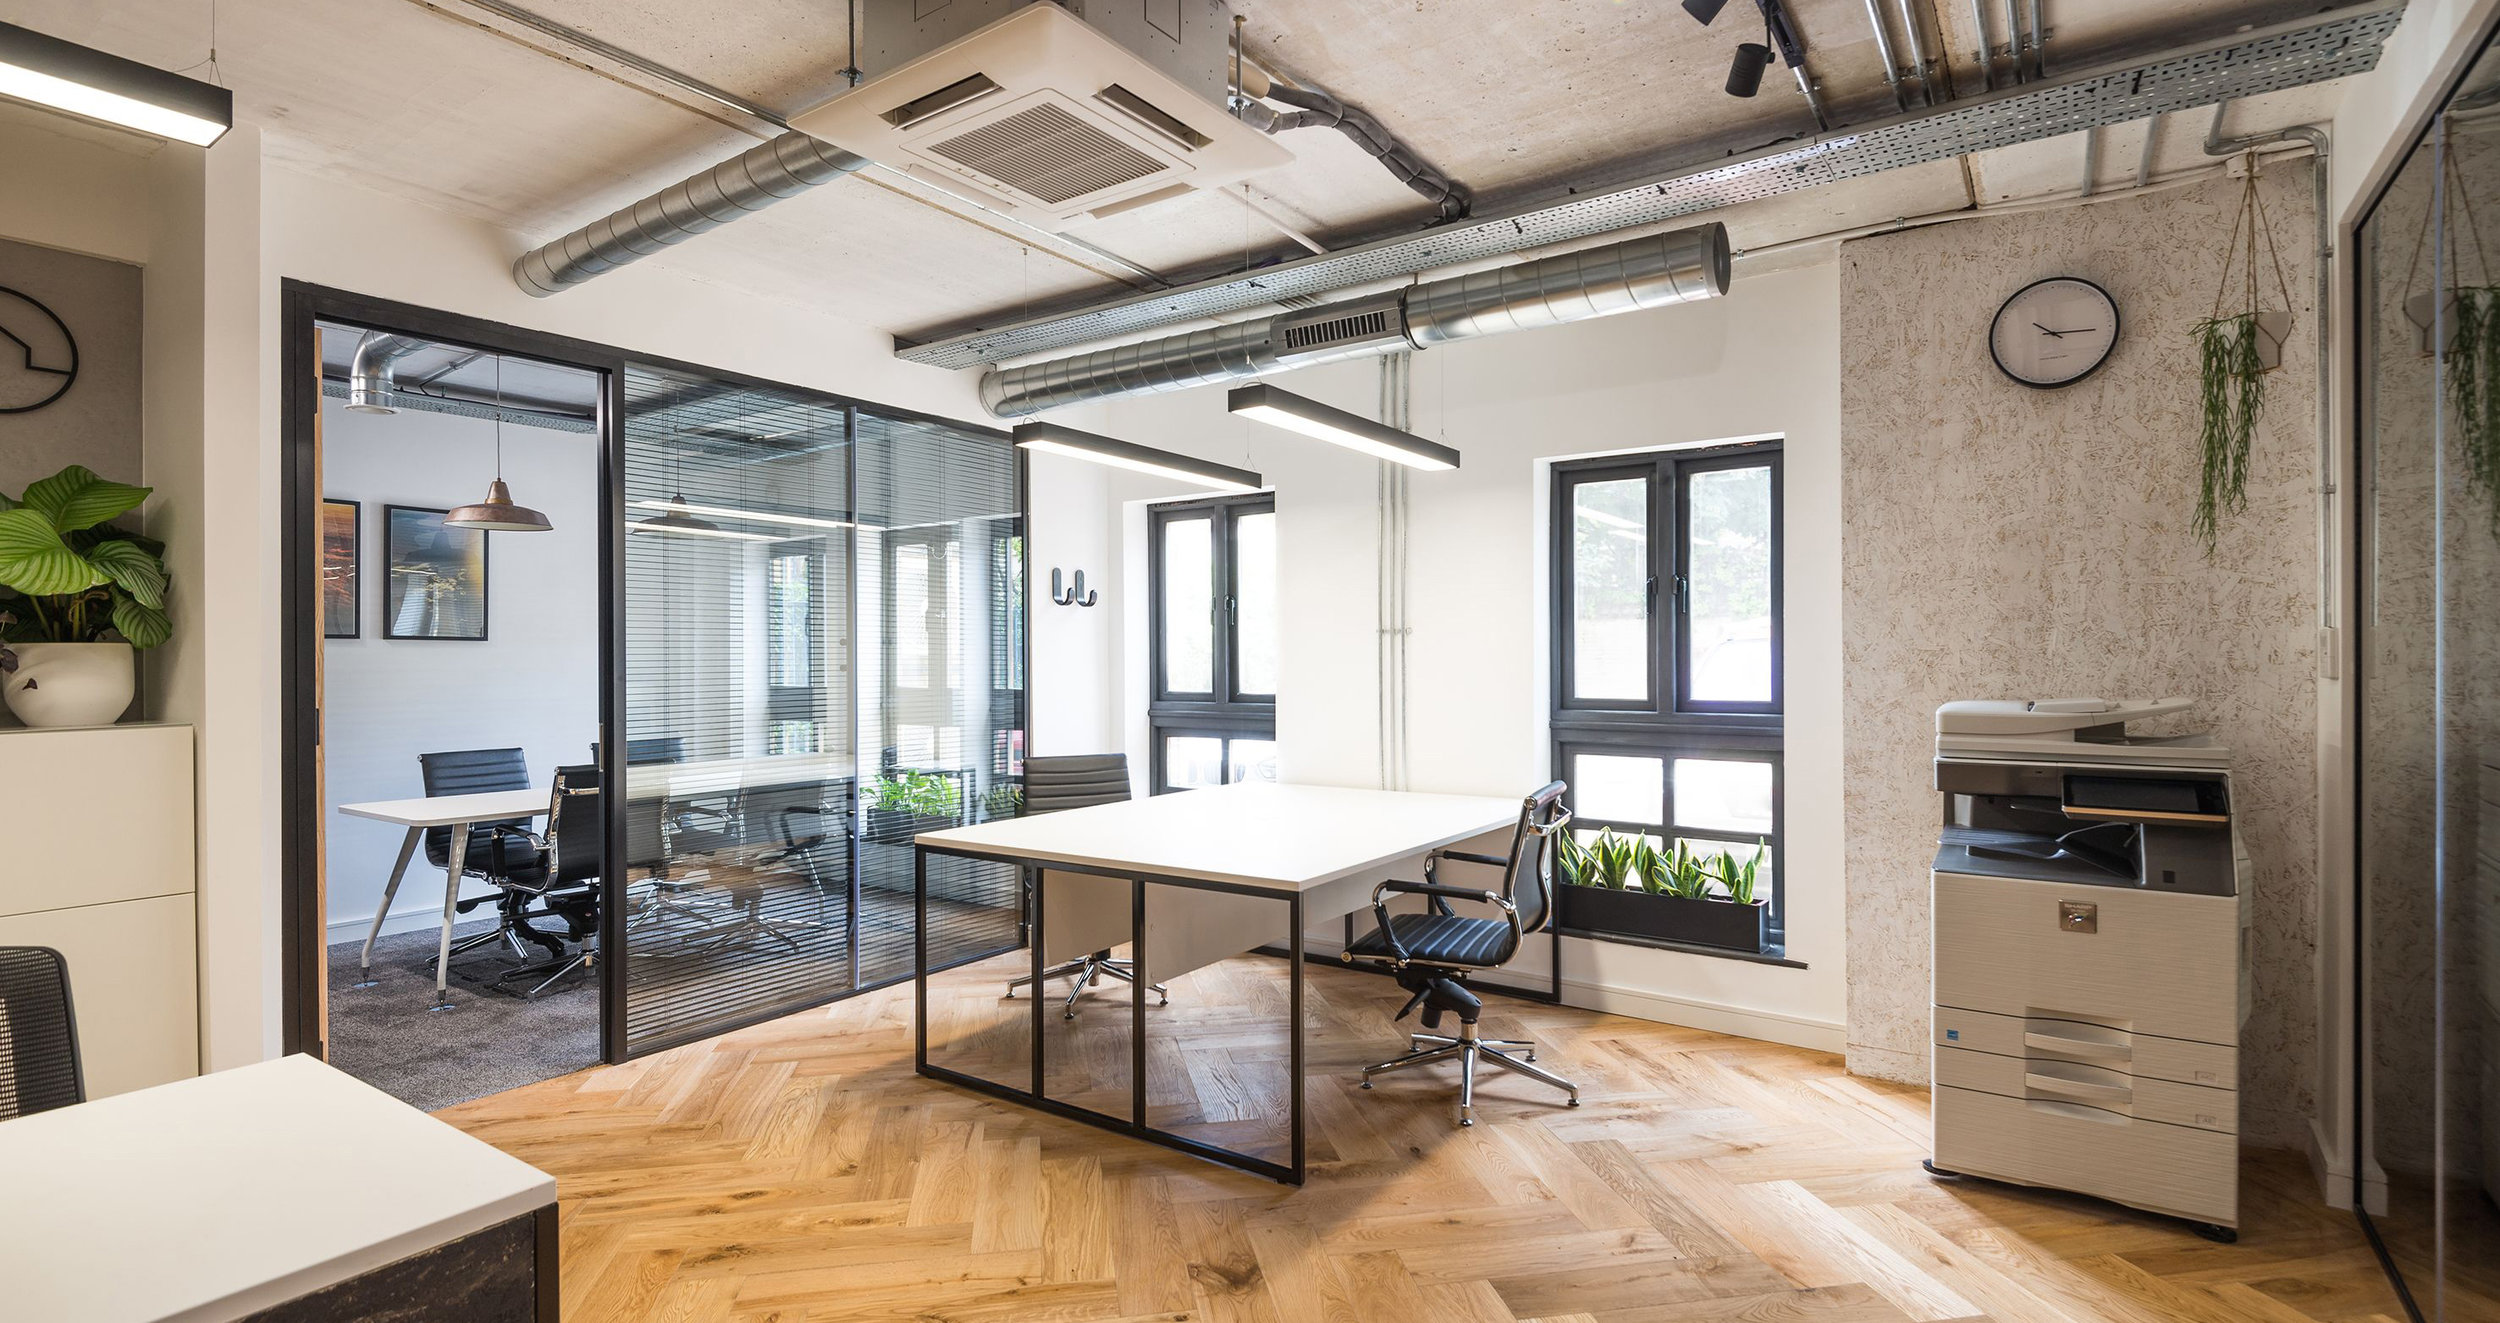 OFFICE LIGHTING FOR A FAST PACED OFFICE FITOUT. - PTC, LONDON.